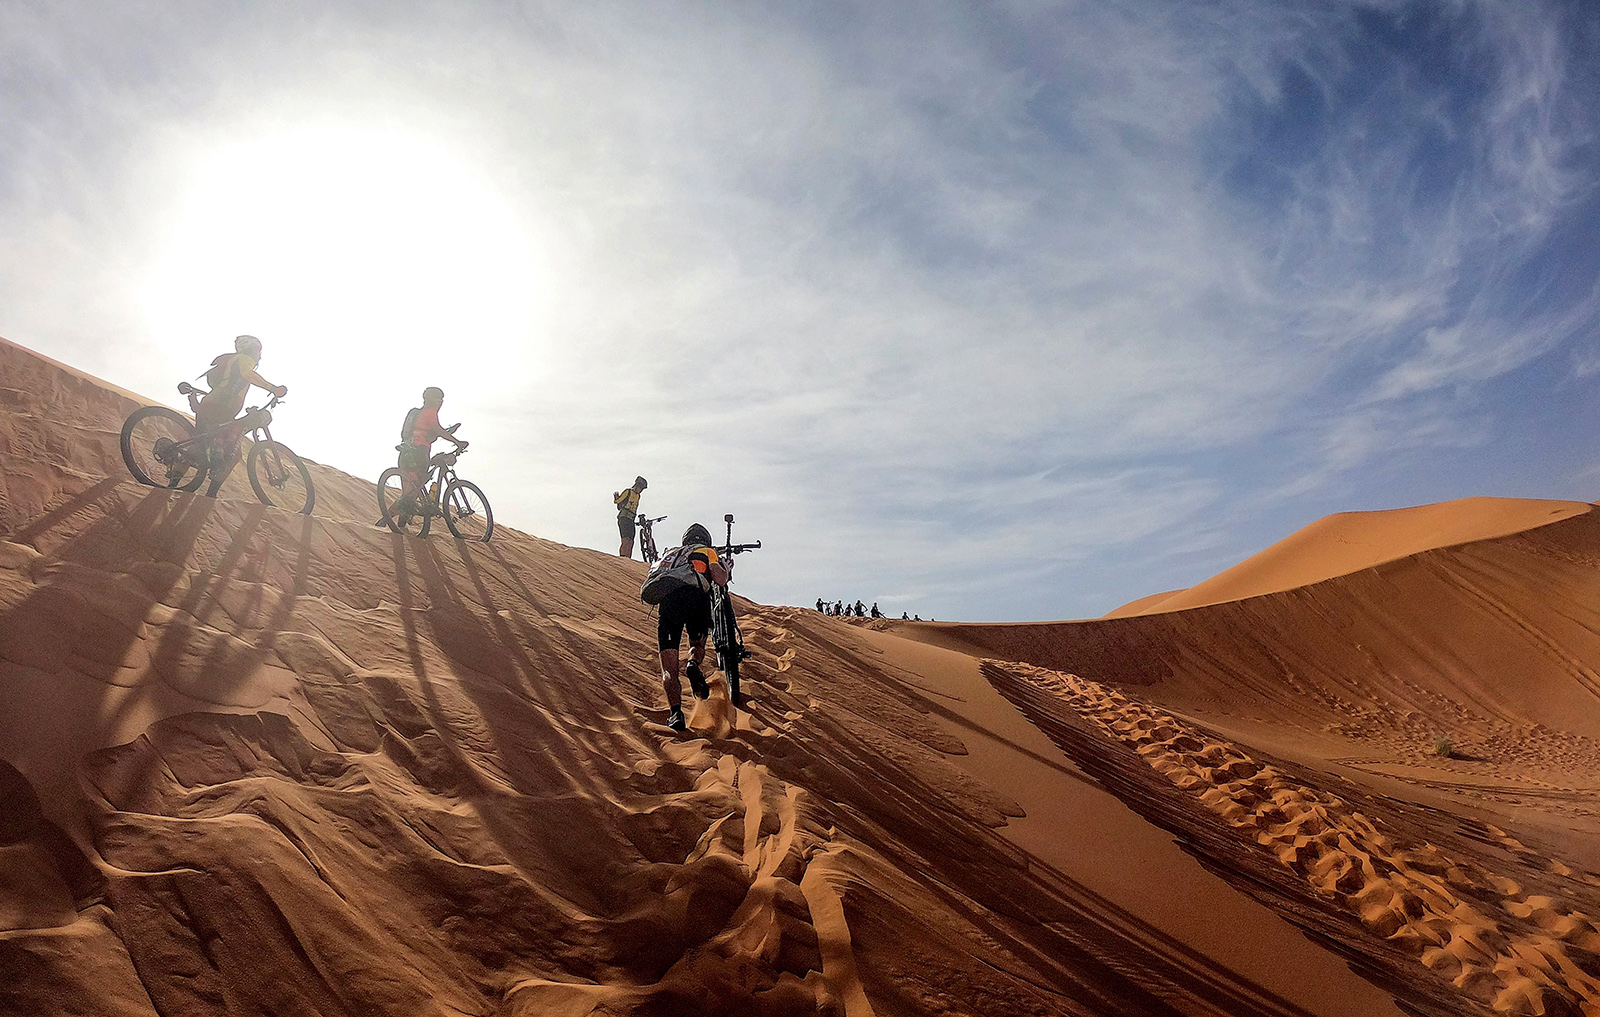 Competitors climb a sand dune during Stage 1 of the Titan Desert 2019 mountain biking race around Merzouga in Morocco on April 28. FRANCK FIFE/AFP/Getty Images